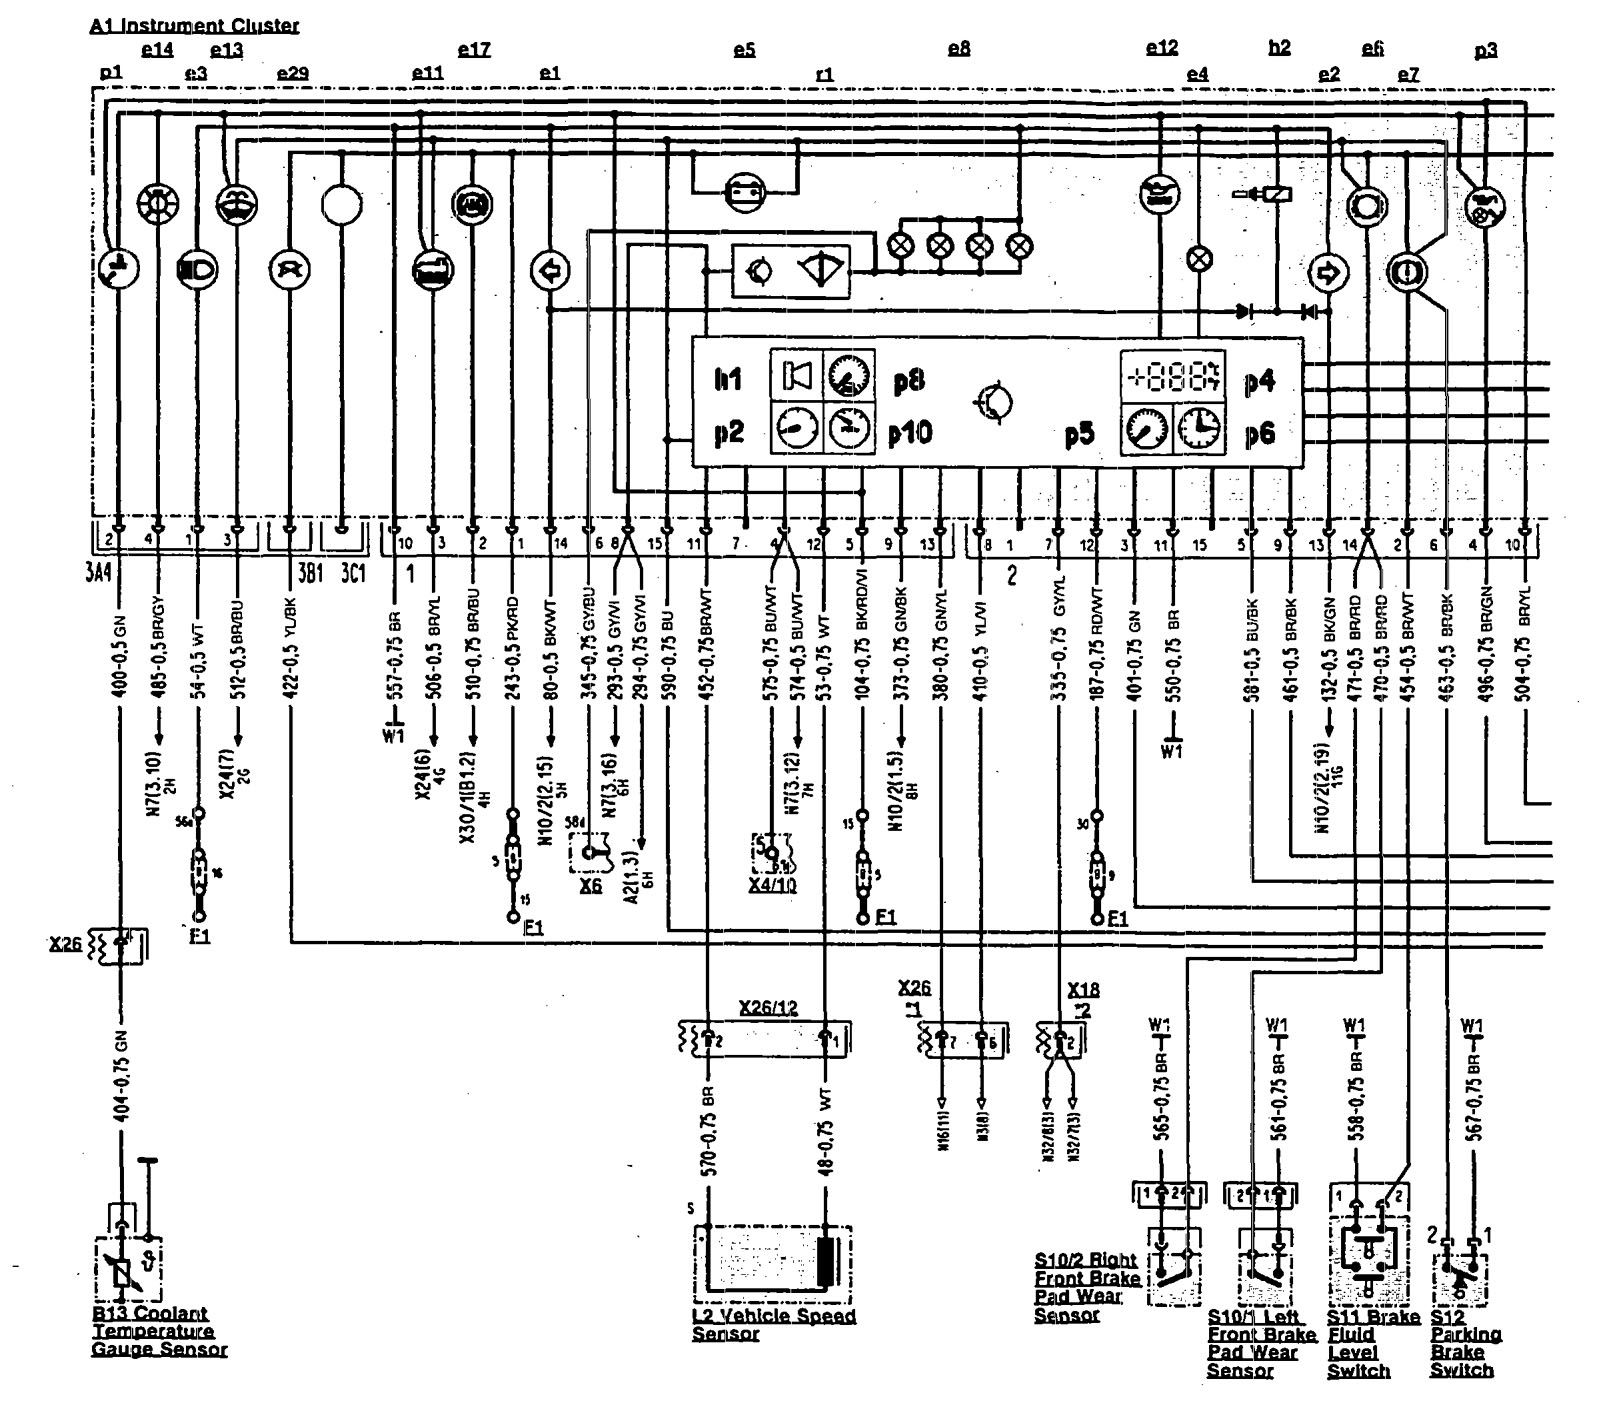 8brkn Search Wiring Diagram Injector Pump Diesel moreover Od mseries lightswitch further Micro Matic Tonearm Wire Diagram besides M939 Wiring Diagram also Wesco Furnace 20uem Wiring Diagram. on electrical wiring diagram m35a2